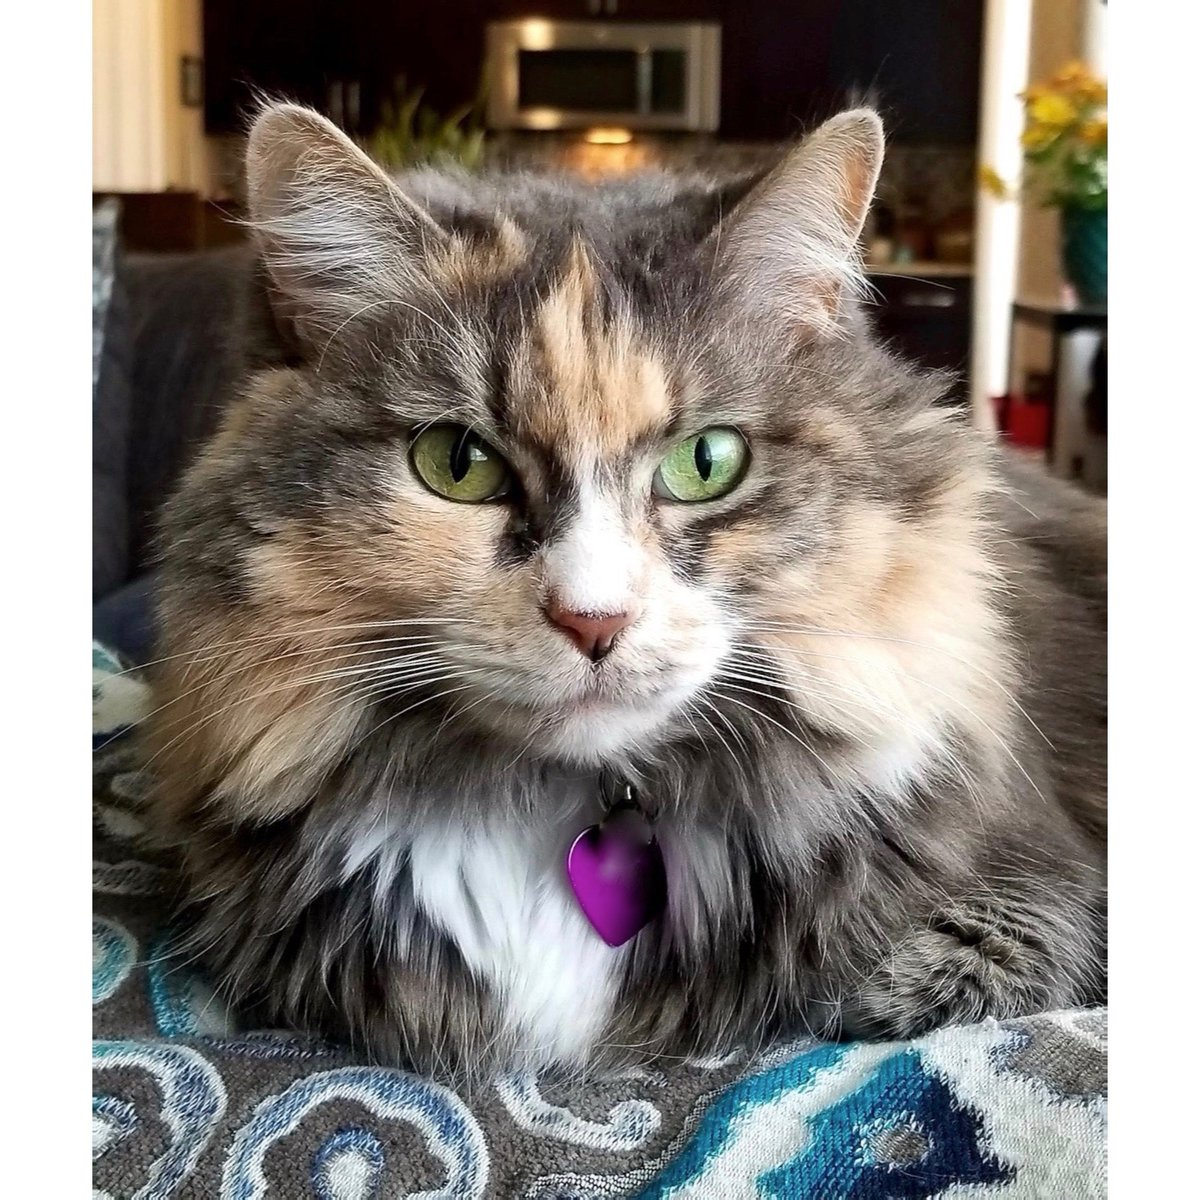 The weather report for this #seniorsunday calls for a breath of fresh air and sunny eyes, all thanks to 12 year-old Abbey! Many thanks to her human,  #teamcatmojo's Lori Anbuhl for the picture and for brightening our day!